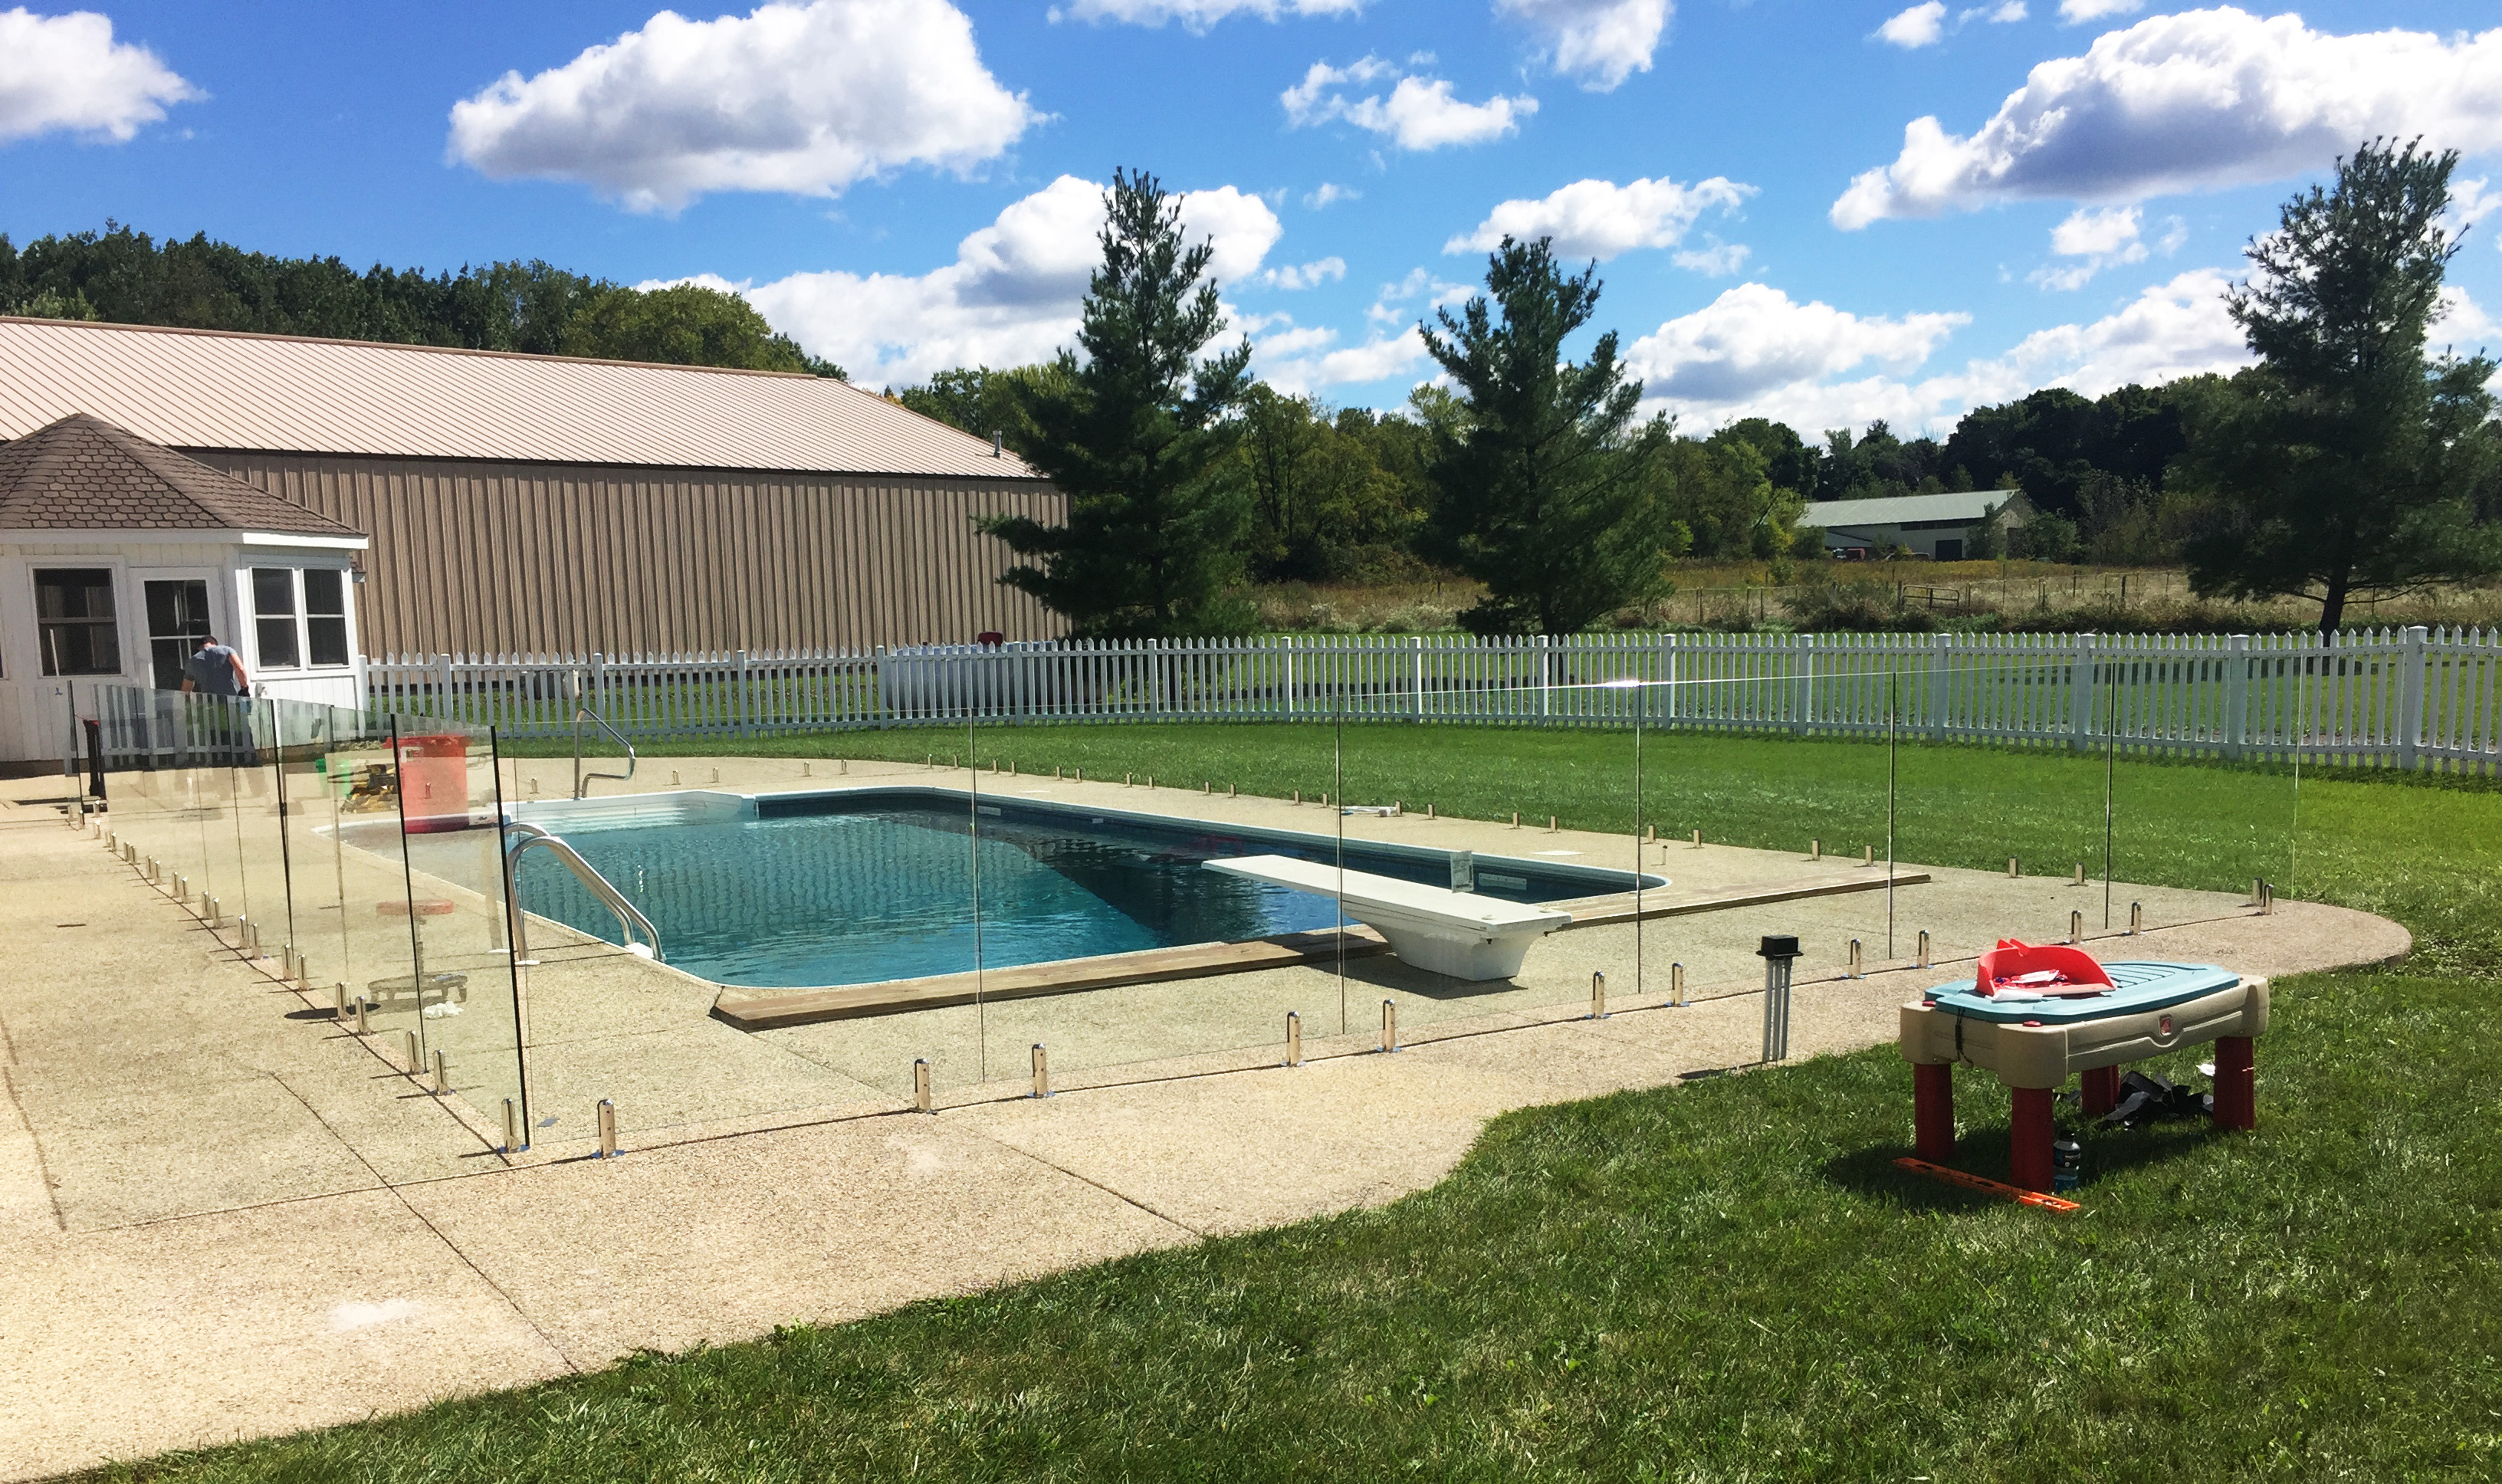 Glaspool Pool Fence Babyproof Your Backyard Aquaview Glass Pool Fences